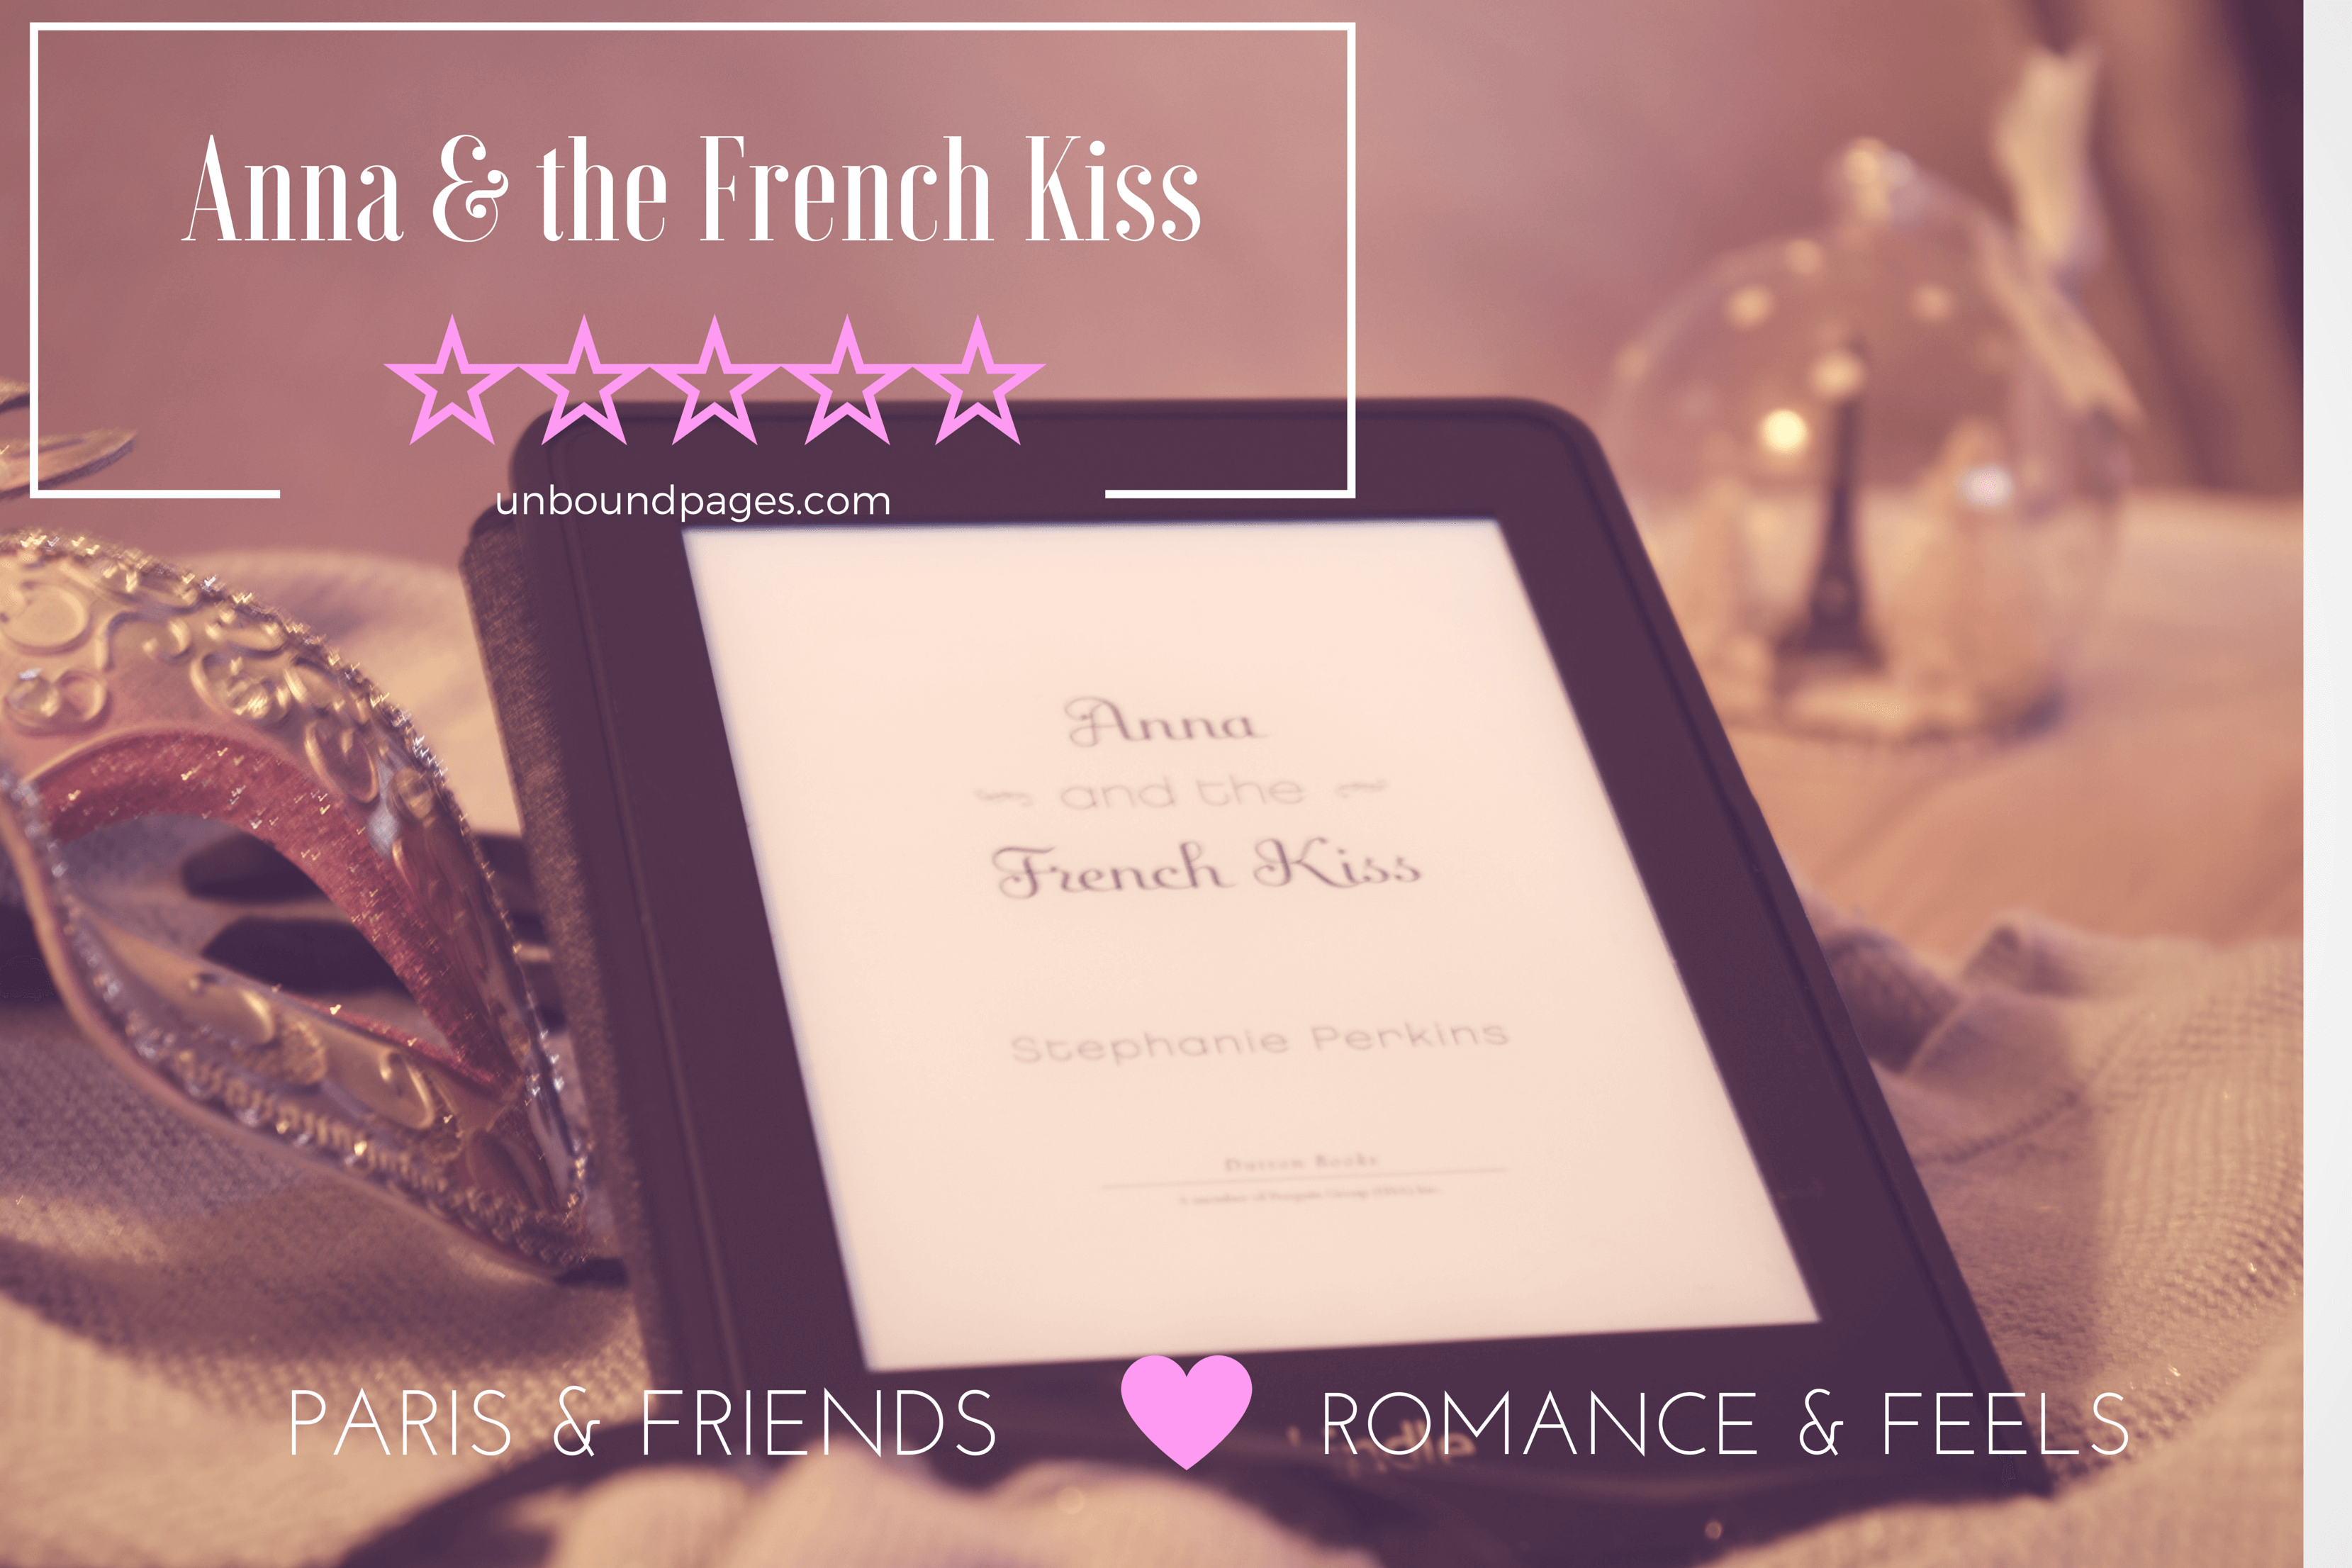 Anna & the French Kiss is absolutely adorable! I loved the messy relationships, friendships, etc. All the St. Claire feels! - unboundpages.com